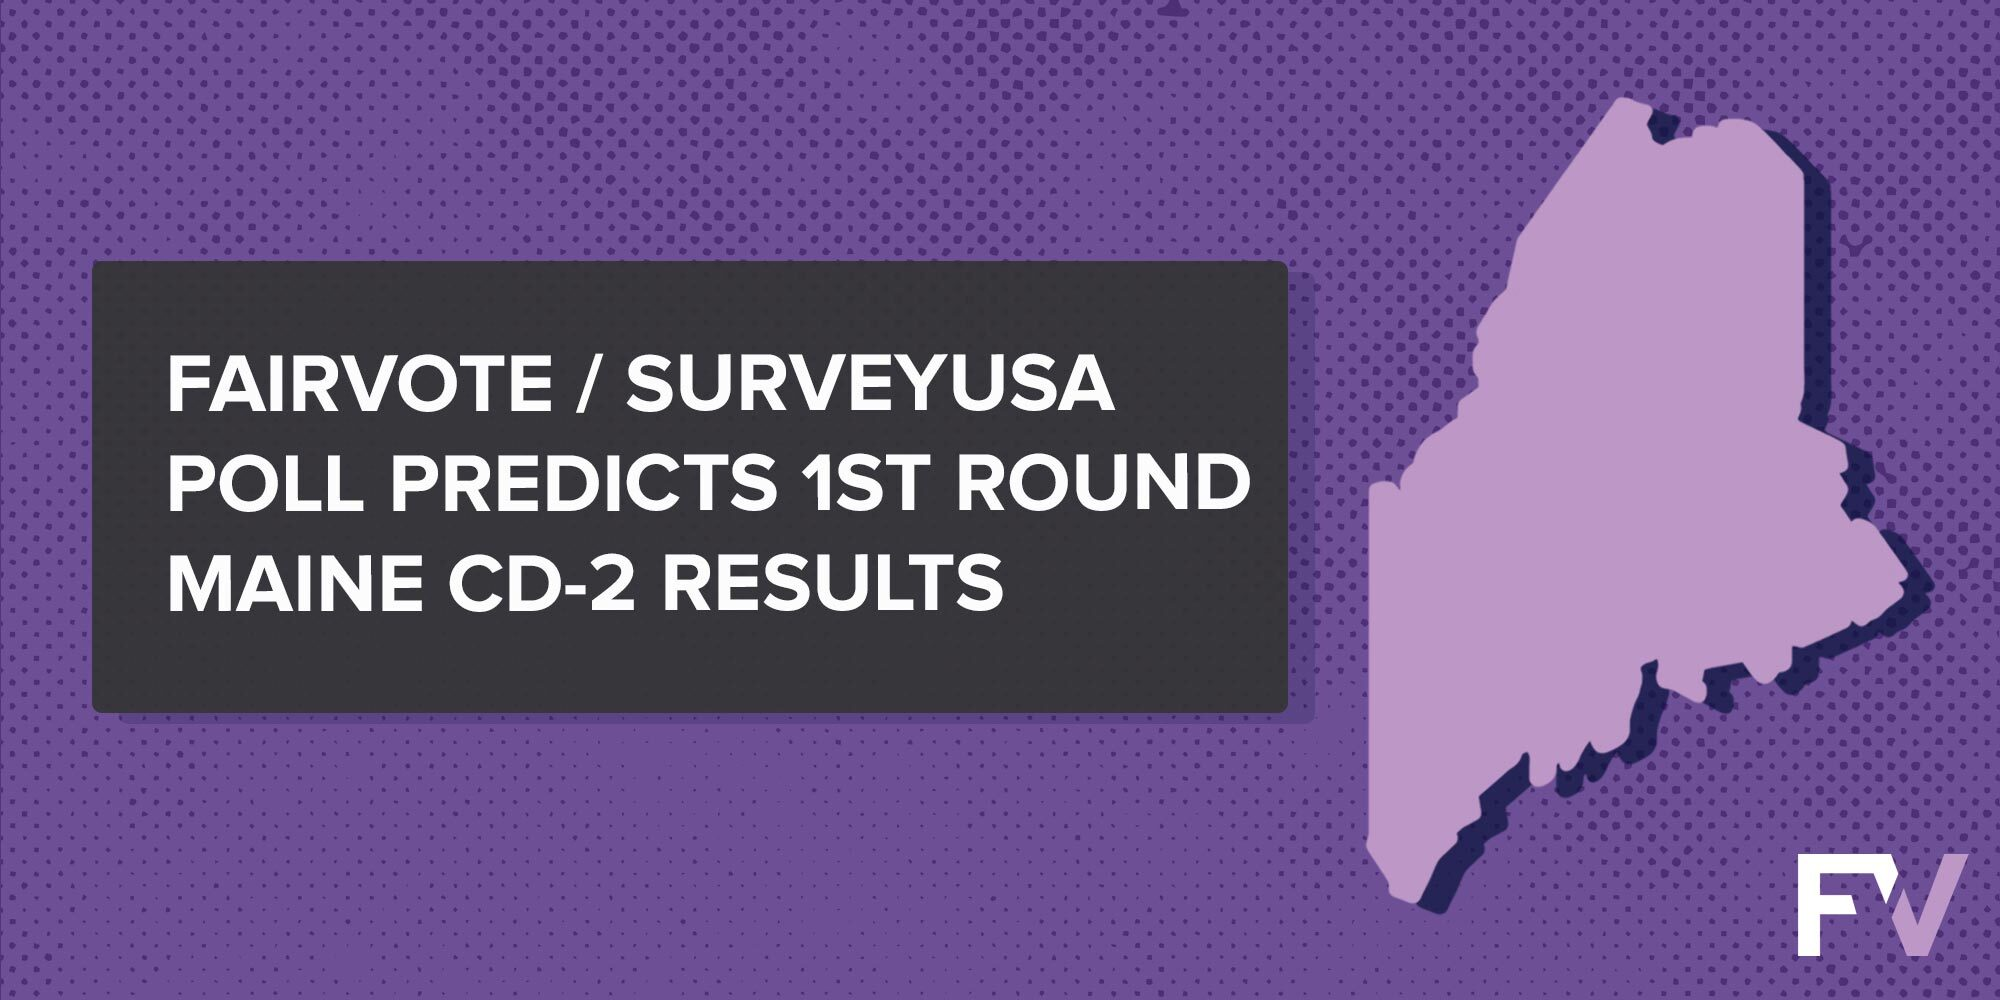 FairVote's Ranked Choice Poll Predicts Initial Maine CD-2 Results